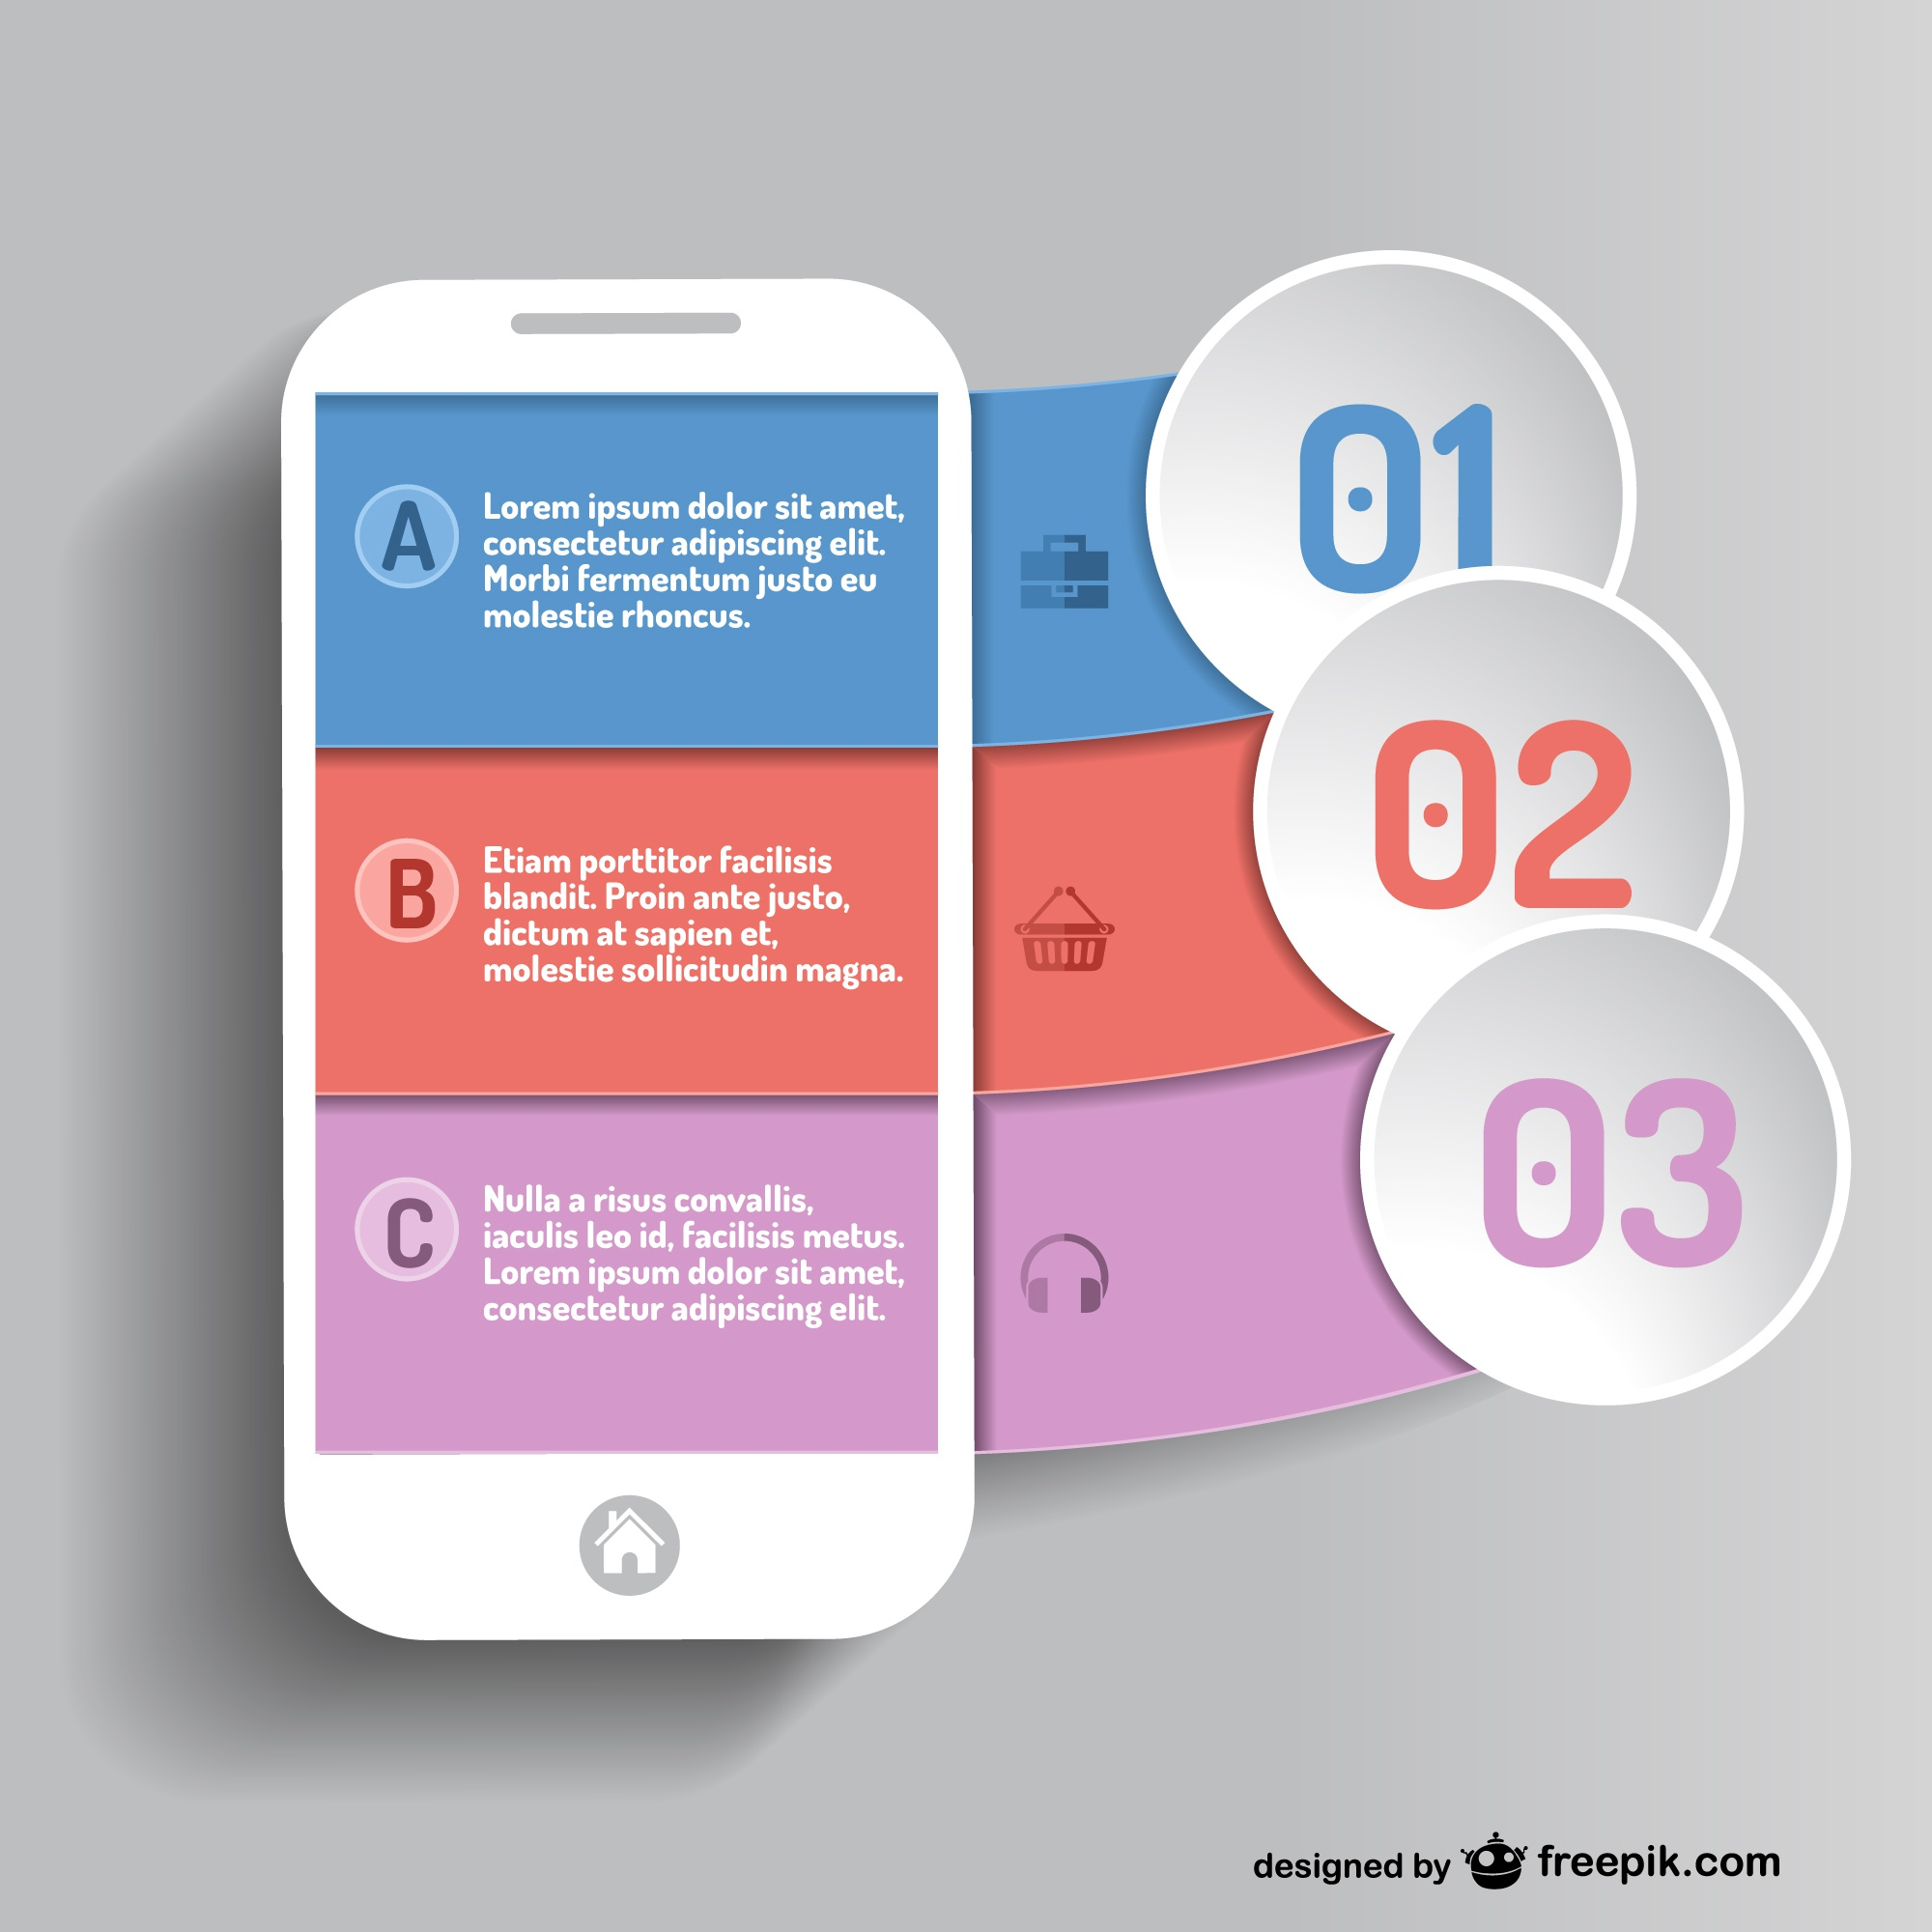 Mobile app infographic vector